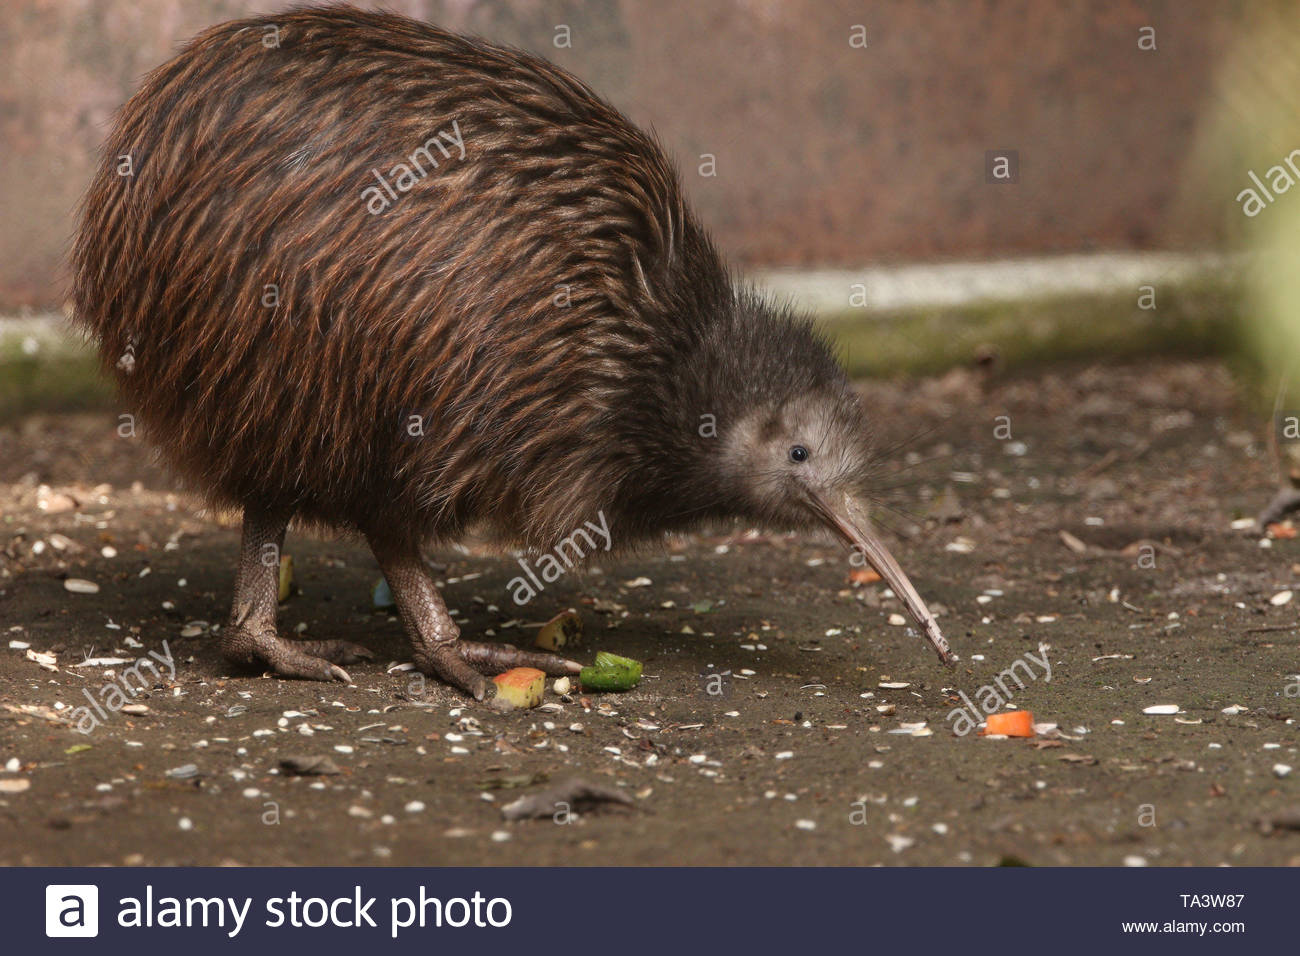 The North Island brown kiwi on a close up horizontal picture. A rare cute little bird endemic to New Zealand. A strange flightless species with long b - Stock Image